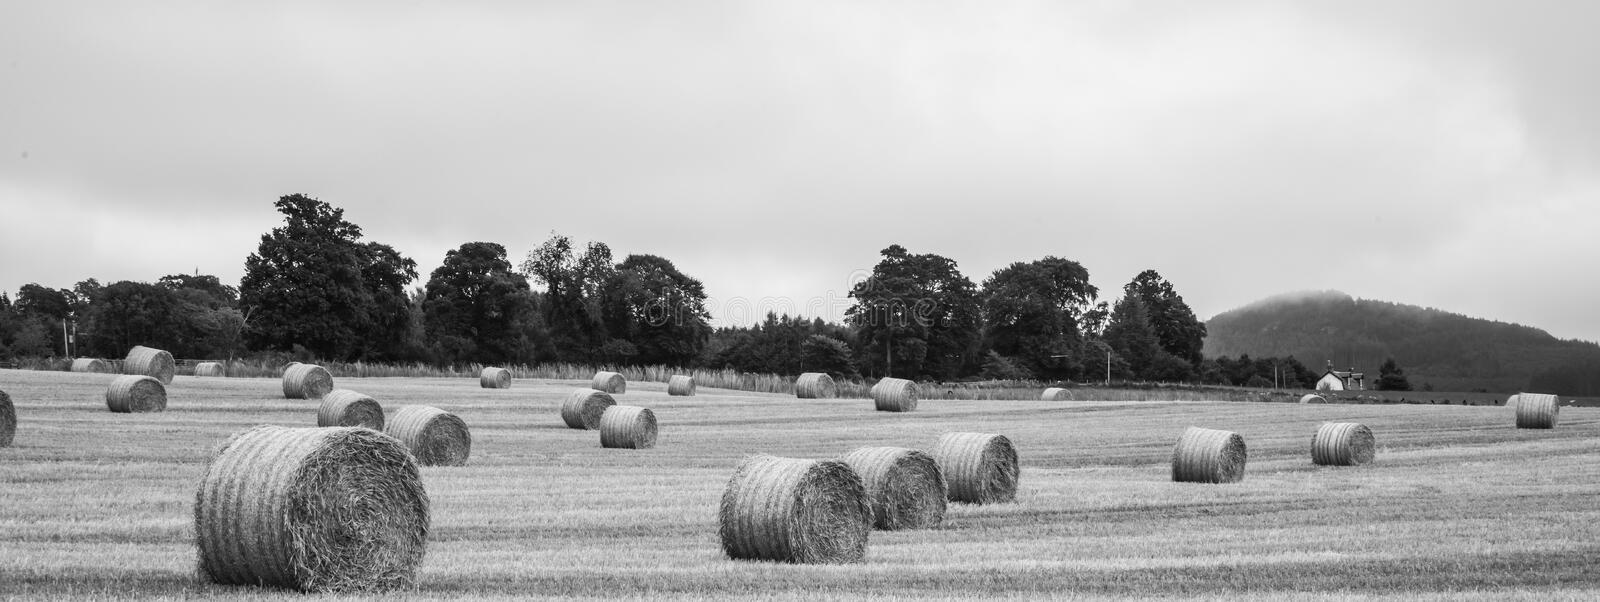 Large round straw bale on field - Scotland stock photography